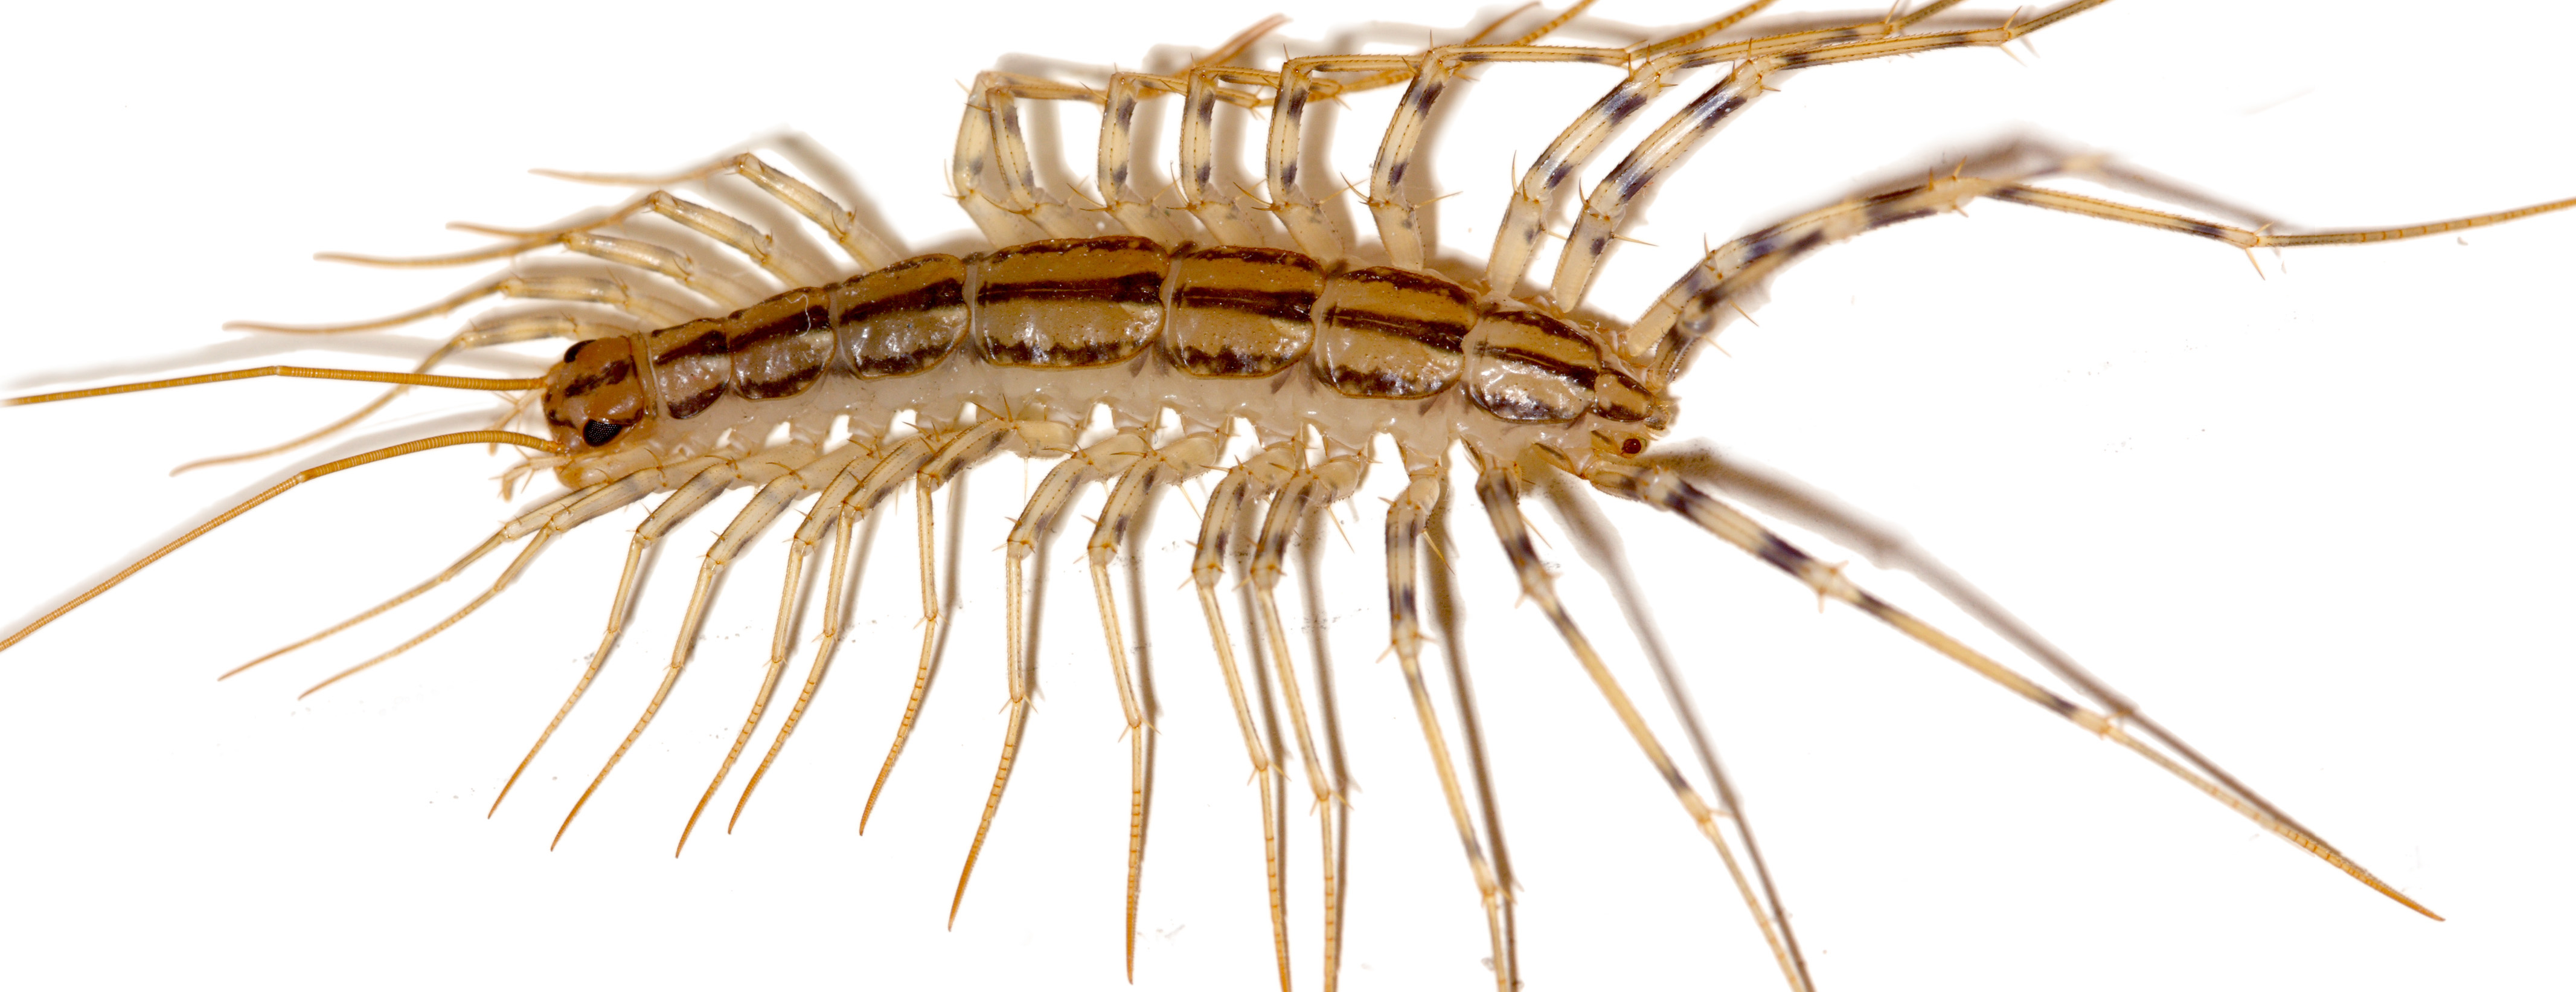 What are those terrifying centipede-like things? | OUPblog